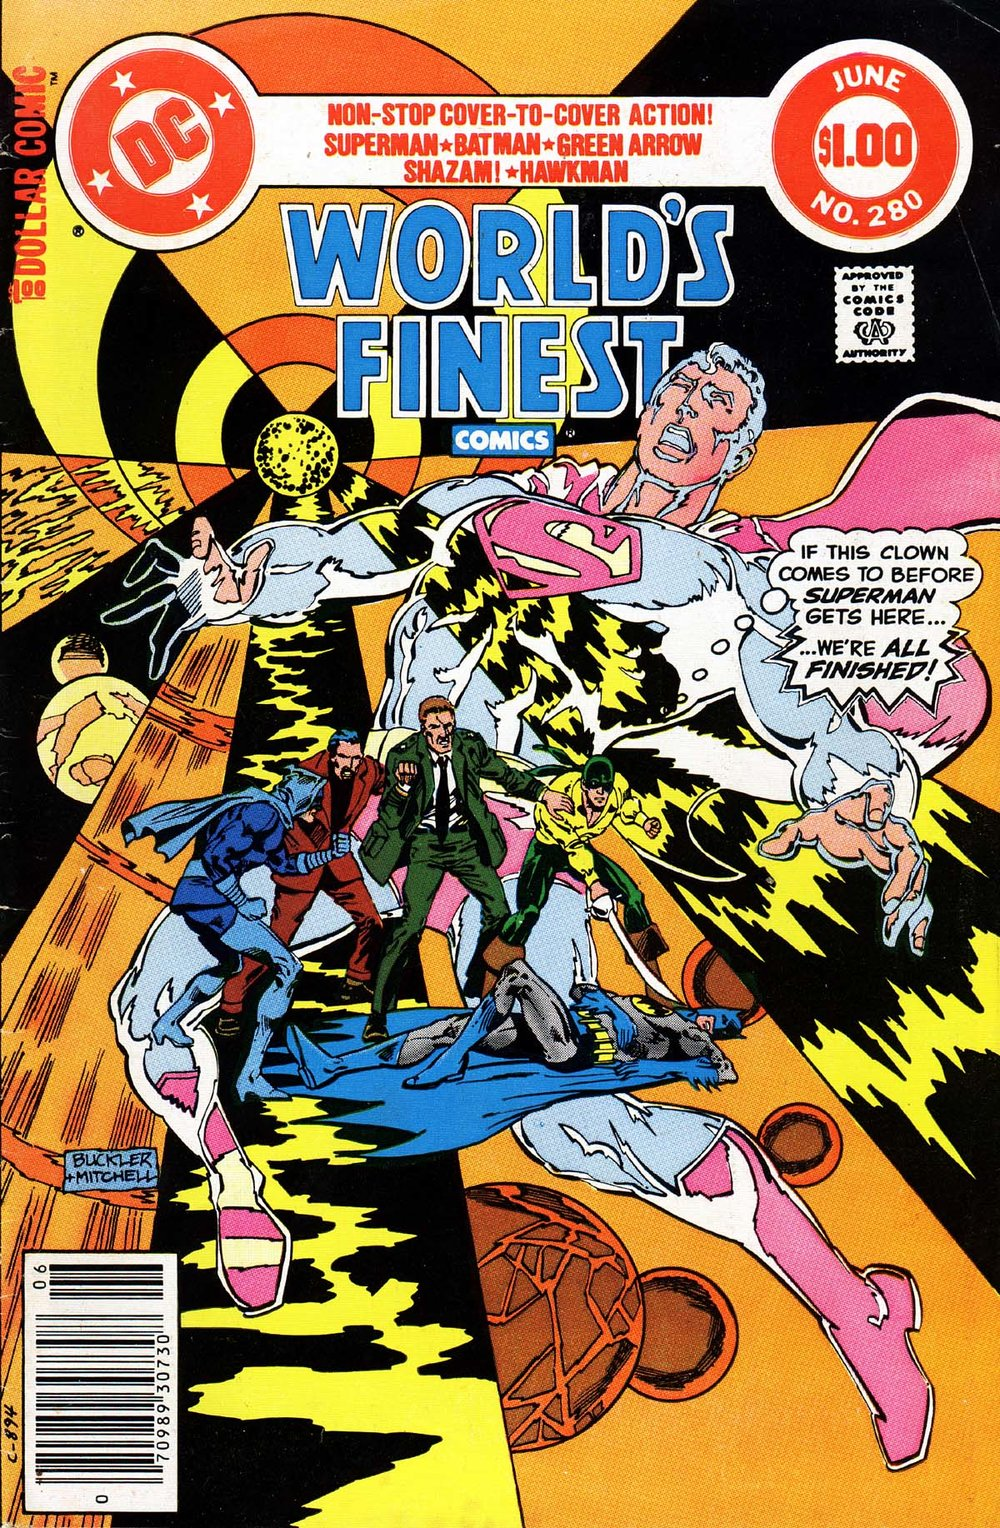 World's Finest Comics (1941) #280, cover penciled by Rich Buckler & inked by Steve Mitchell.